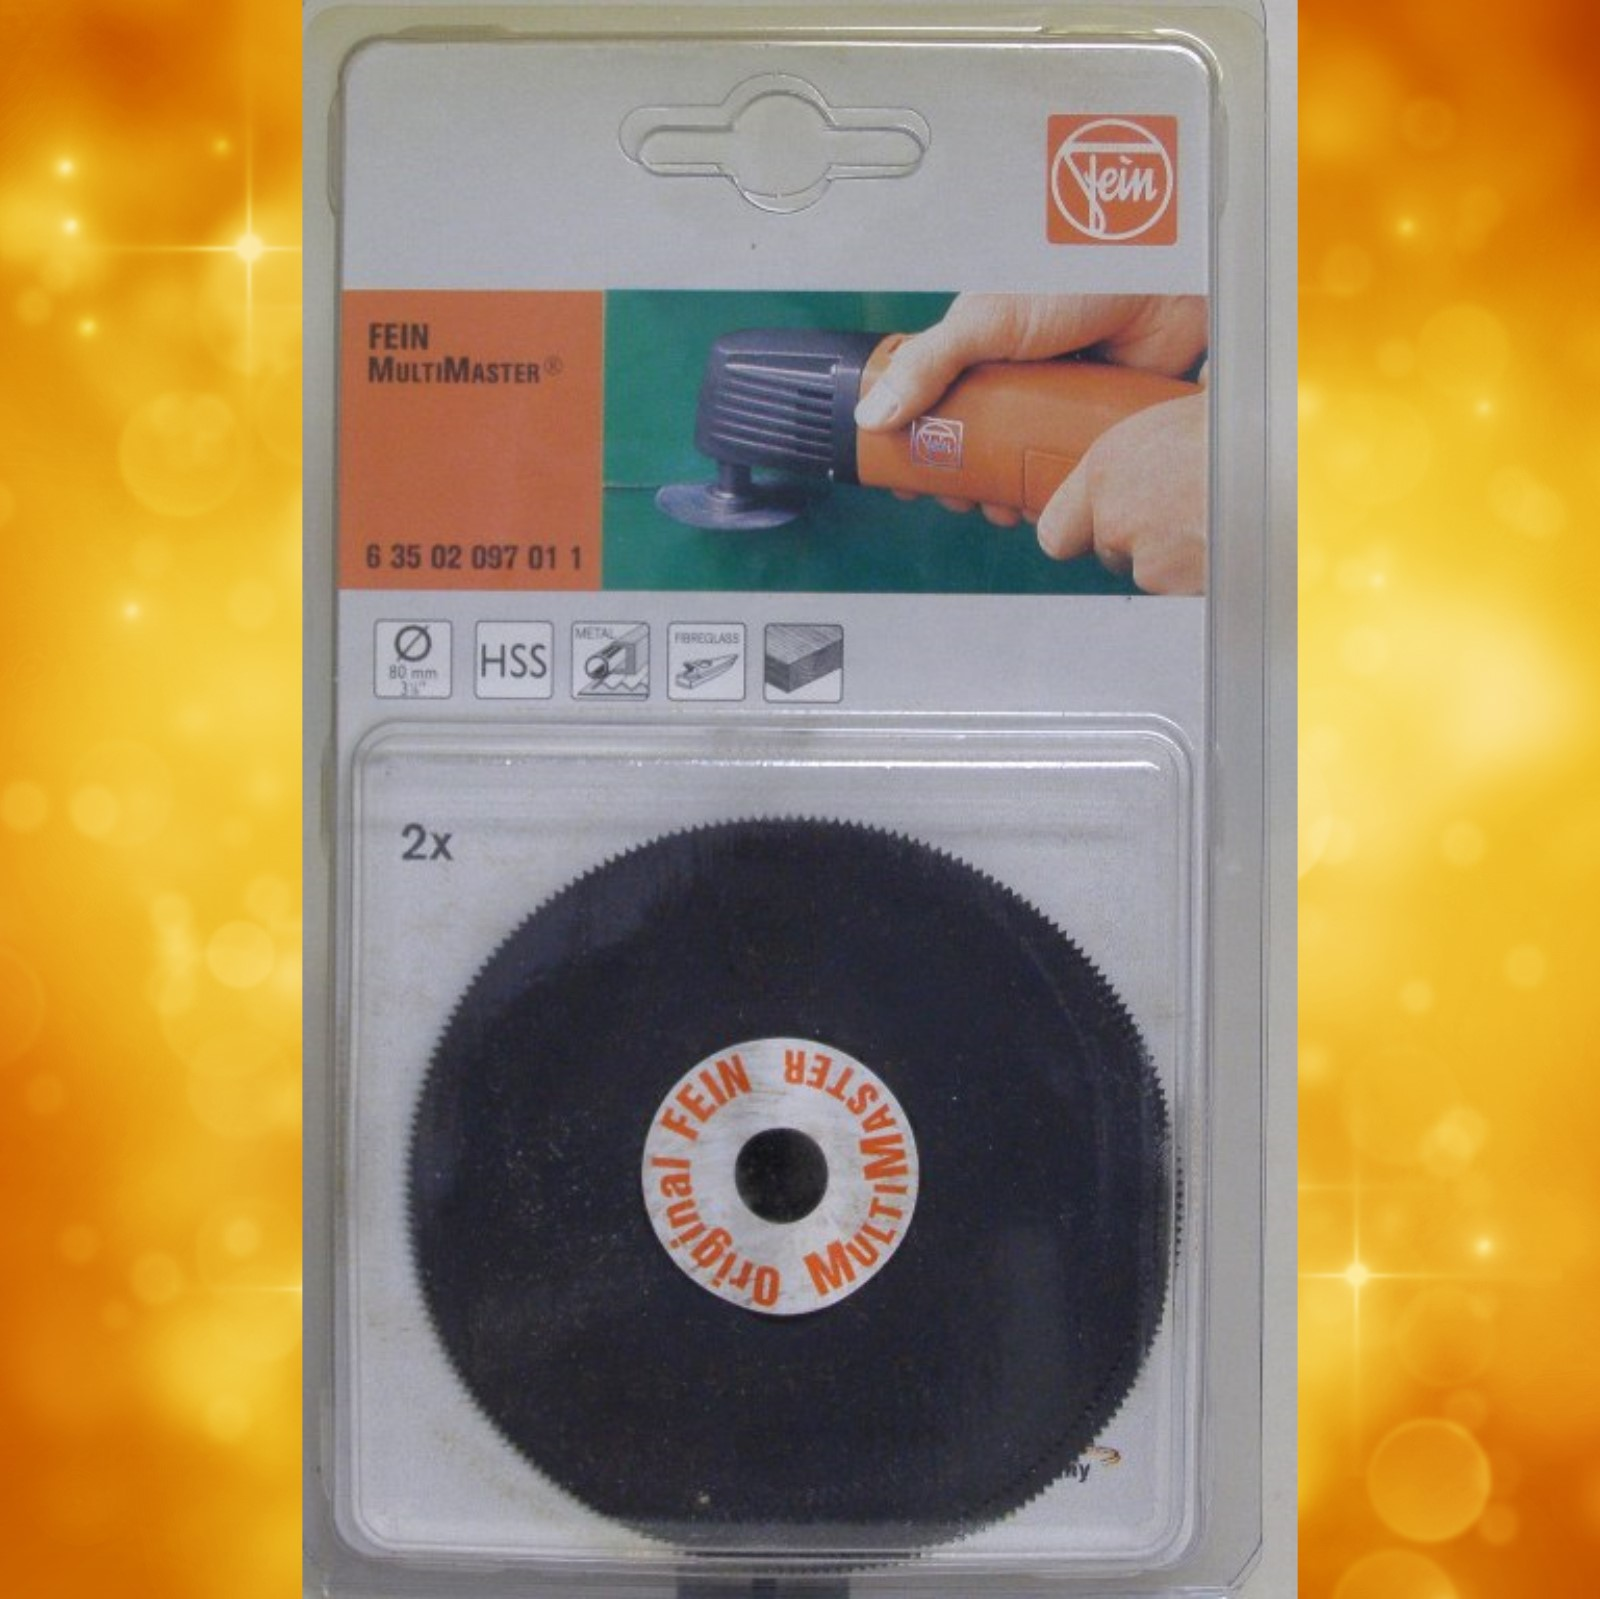 Fein Blades for Cutting Sheet Metal, Fiberglass, or Wood. 3-1/8 in. Diameter Pack of 2 6-35-02-097-01-1a 6-35-02-097-01-1a